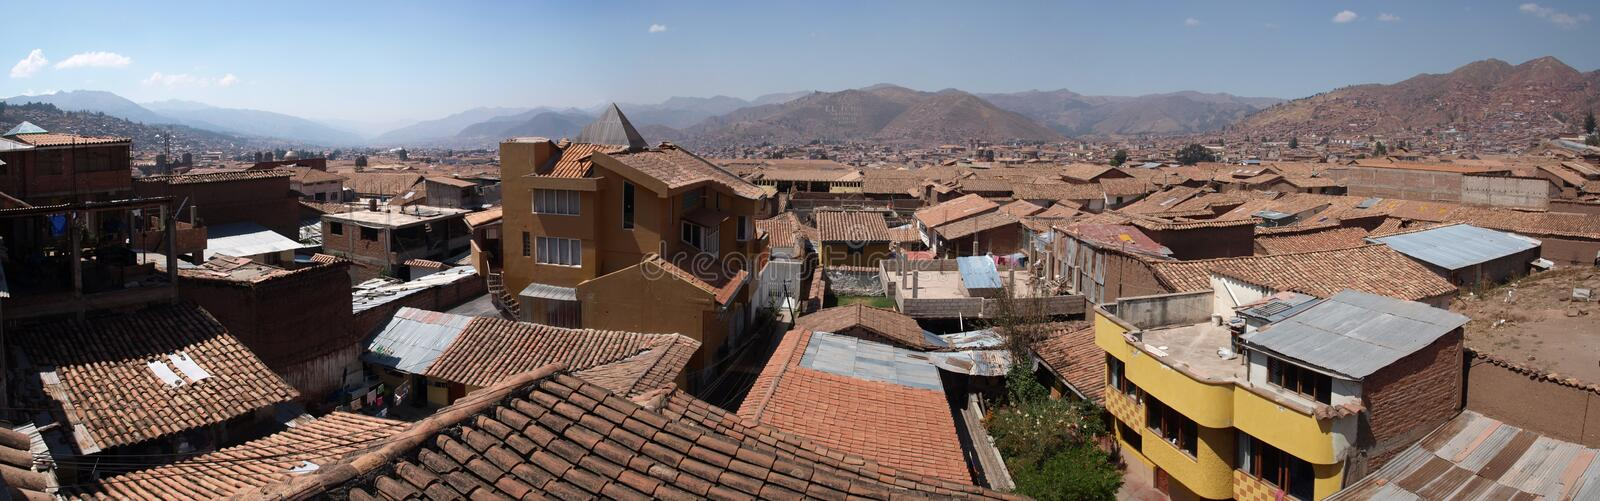 Cuzco. Stitched Panorama - Cuzco Peru South America royalty free stock images